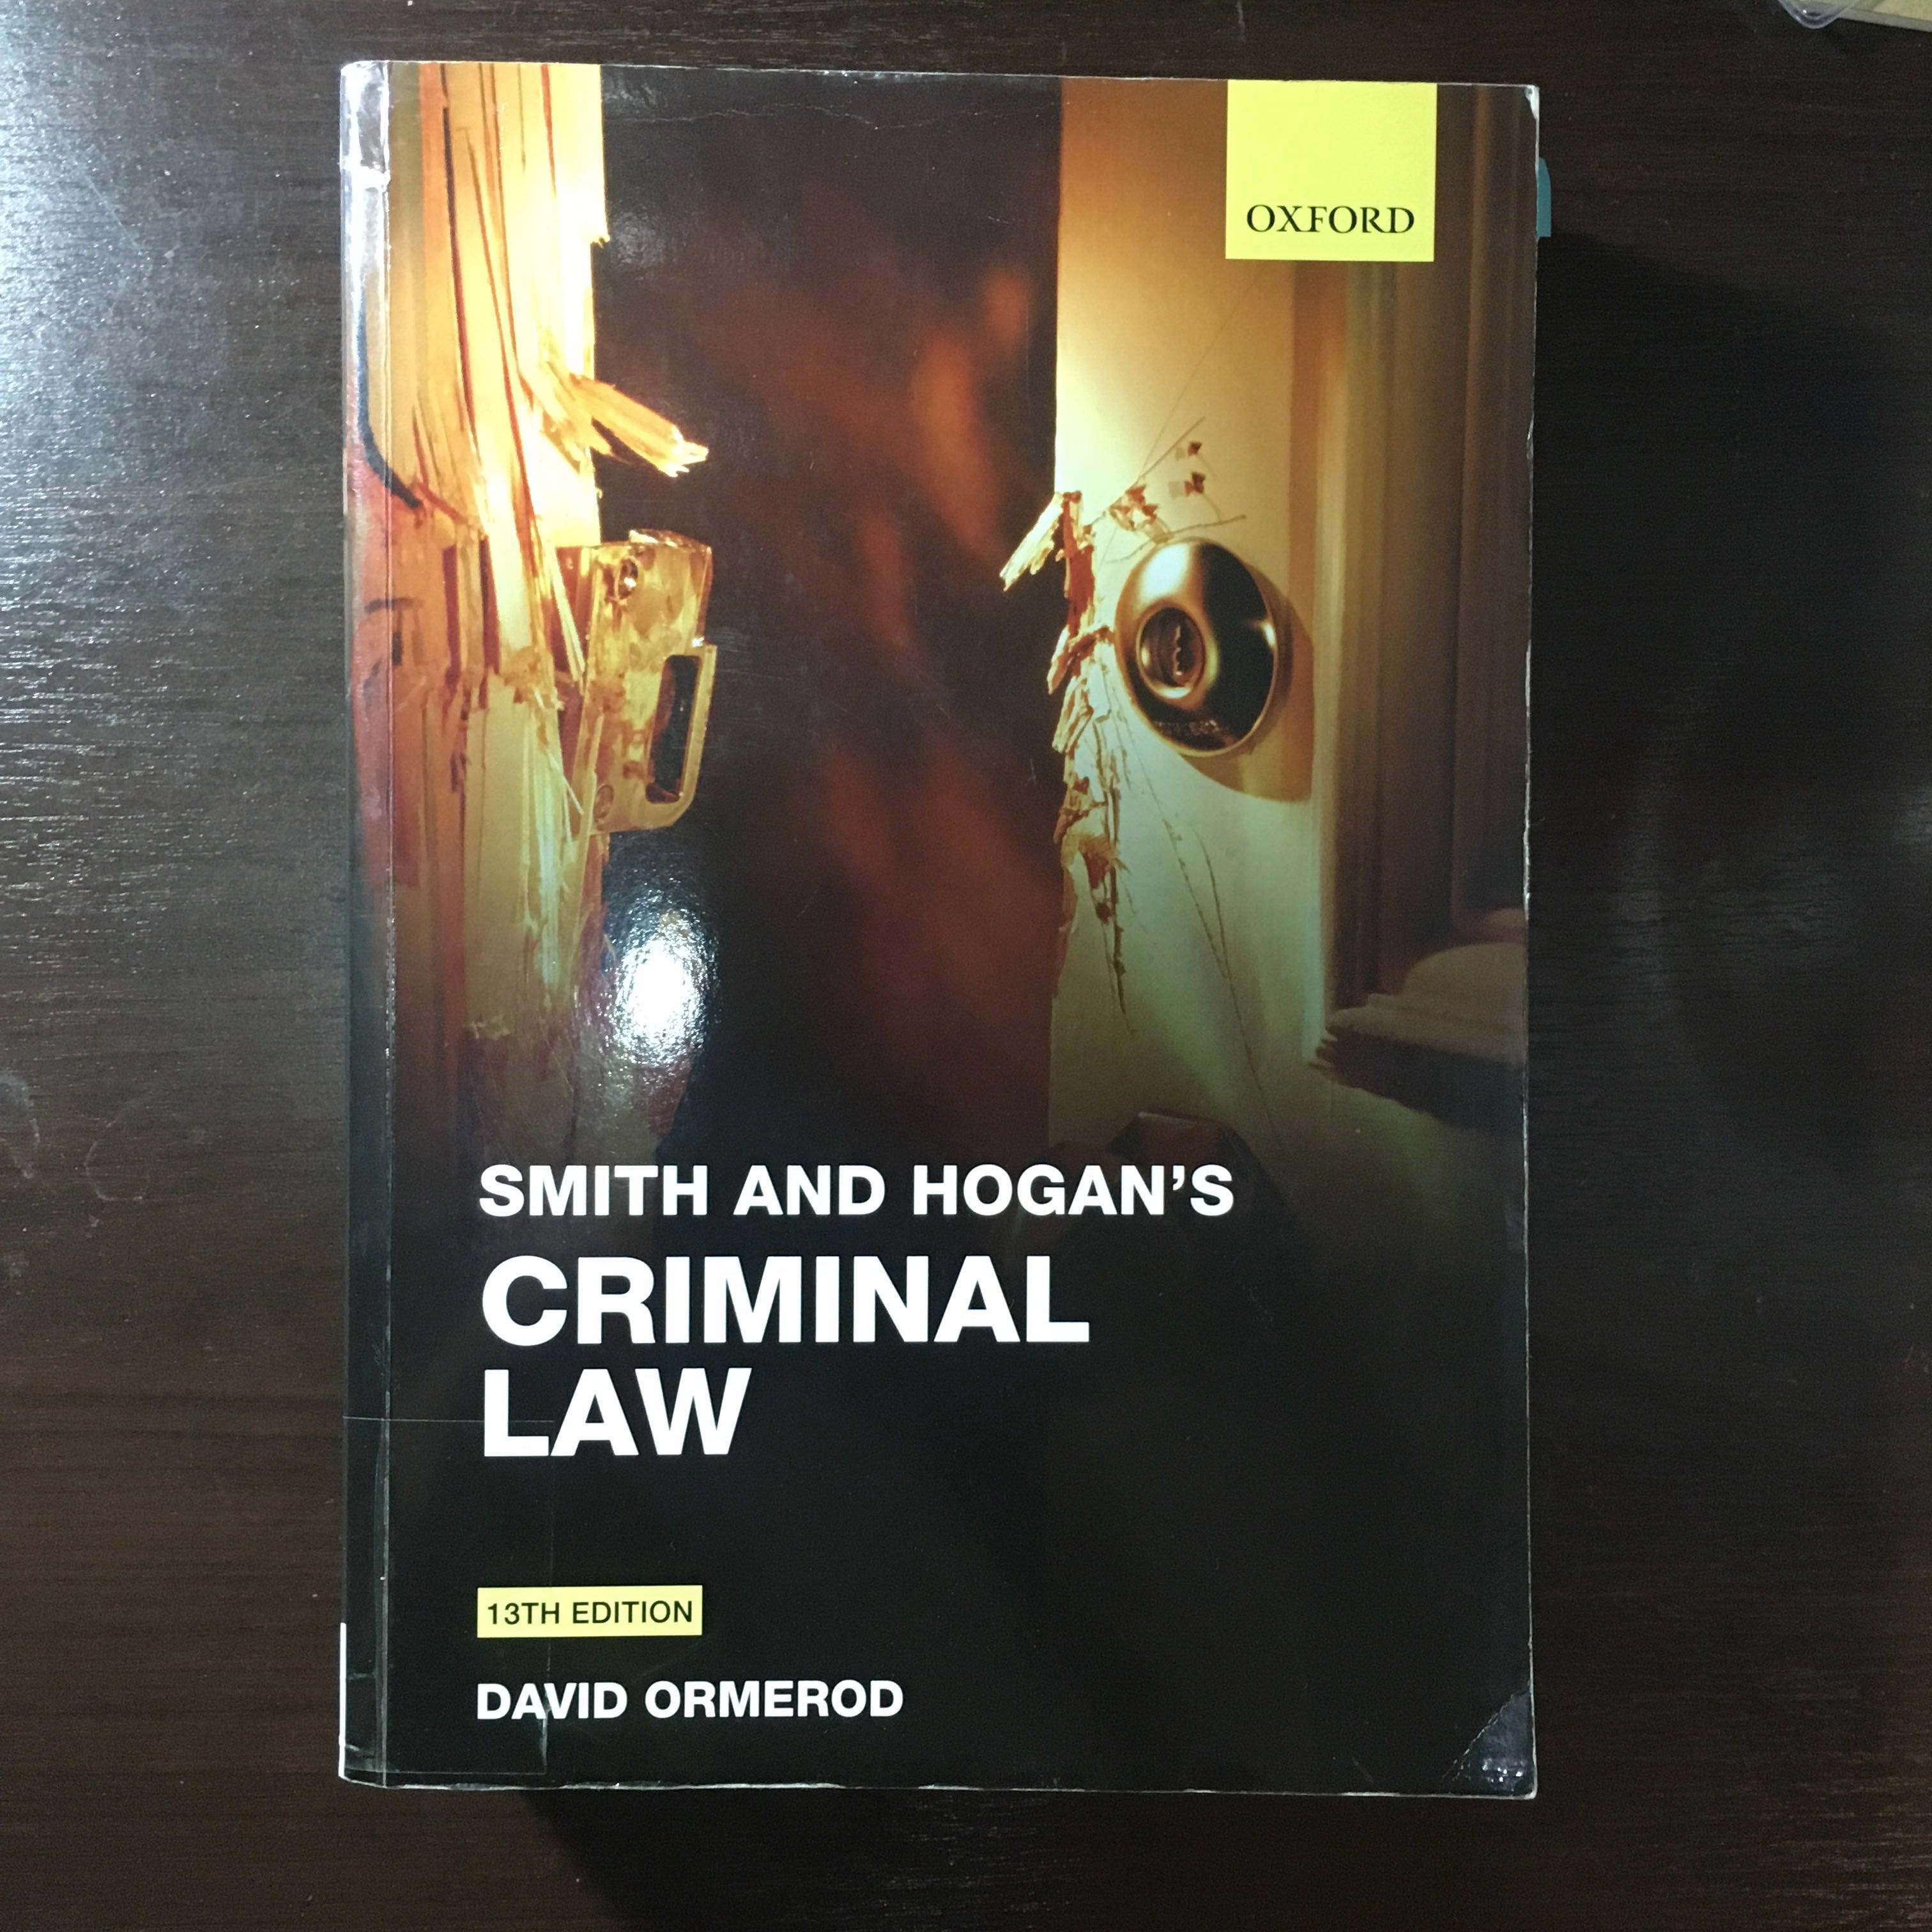 Smith and Hogan's Criminal Law (13th edition)